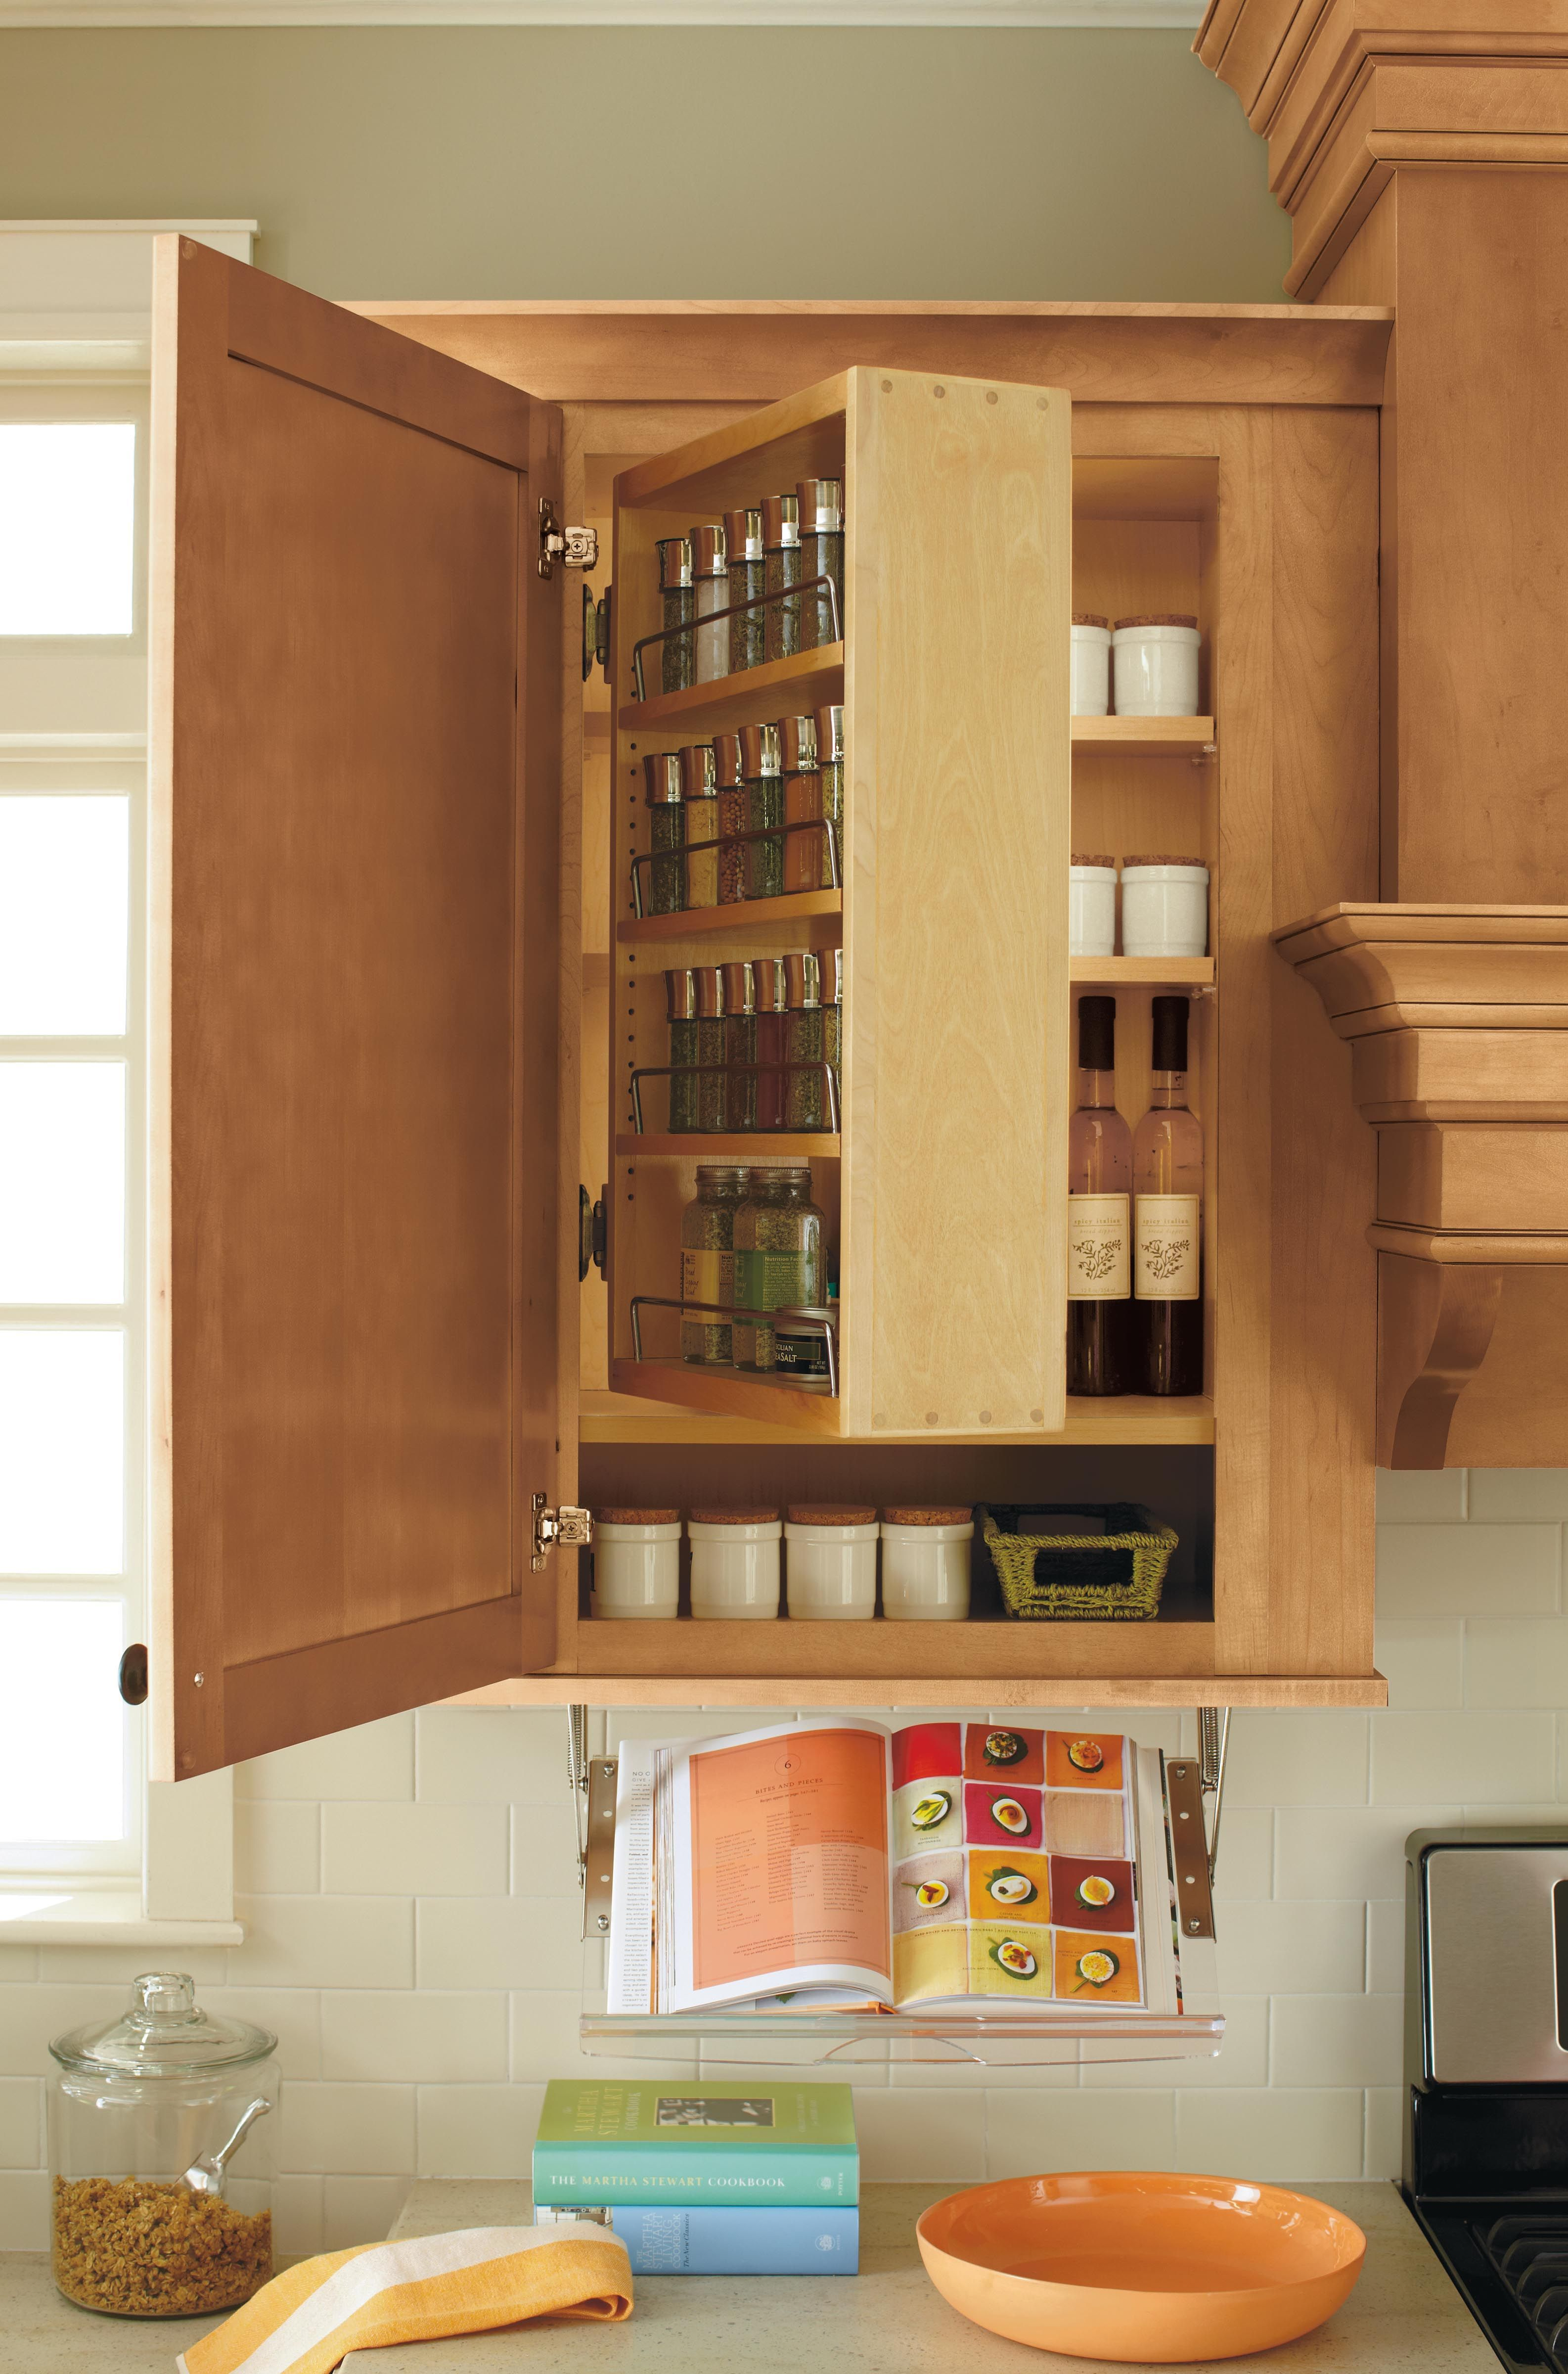 size ideas helps modish full medicine kitchen elegant you top maple organizer home blasting out in wallpaper sand cabinet of design spice fresh kohler website best on for also screws well creek rack freight place pull creative photos to pretty hd slide cabinets the harbor voguish paint wall restore decpot your spices